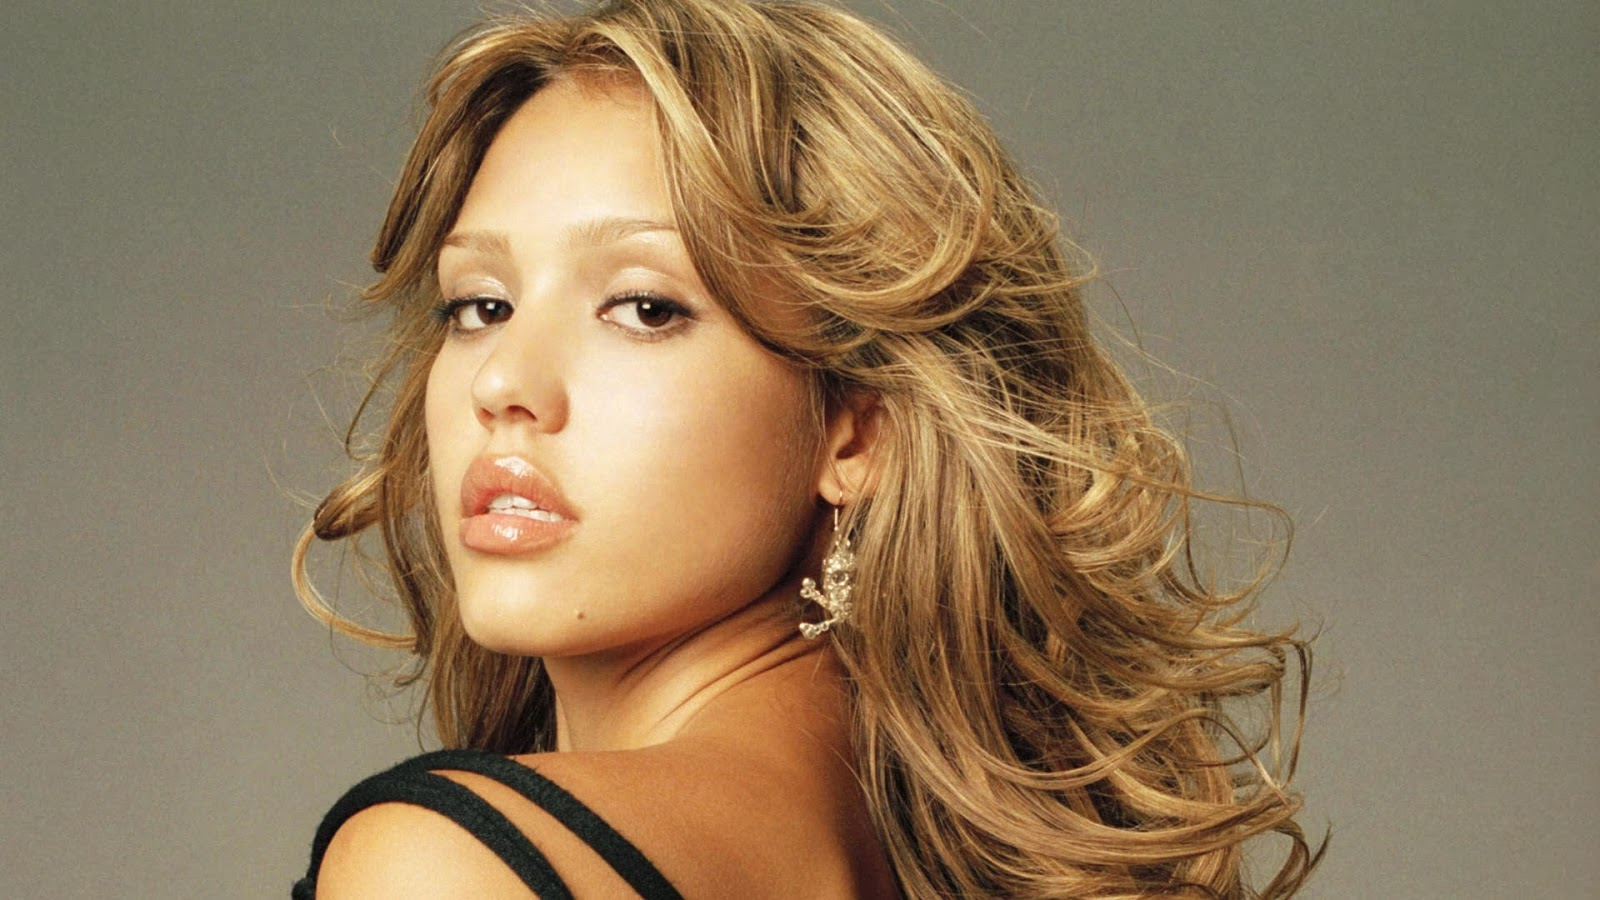 Cute Jessica Alba Best HD Wallpaper